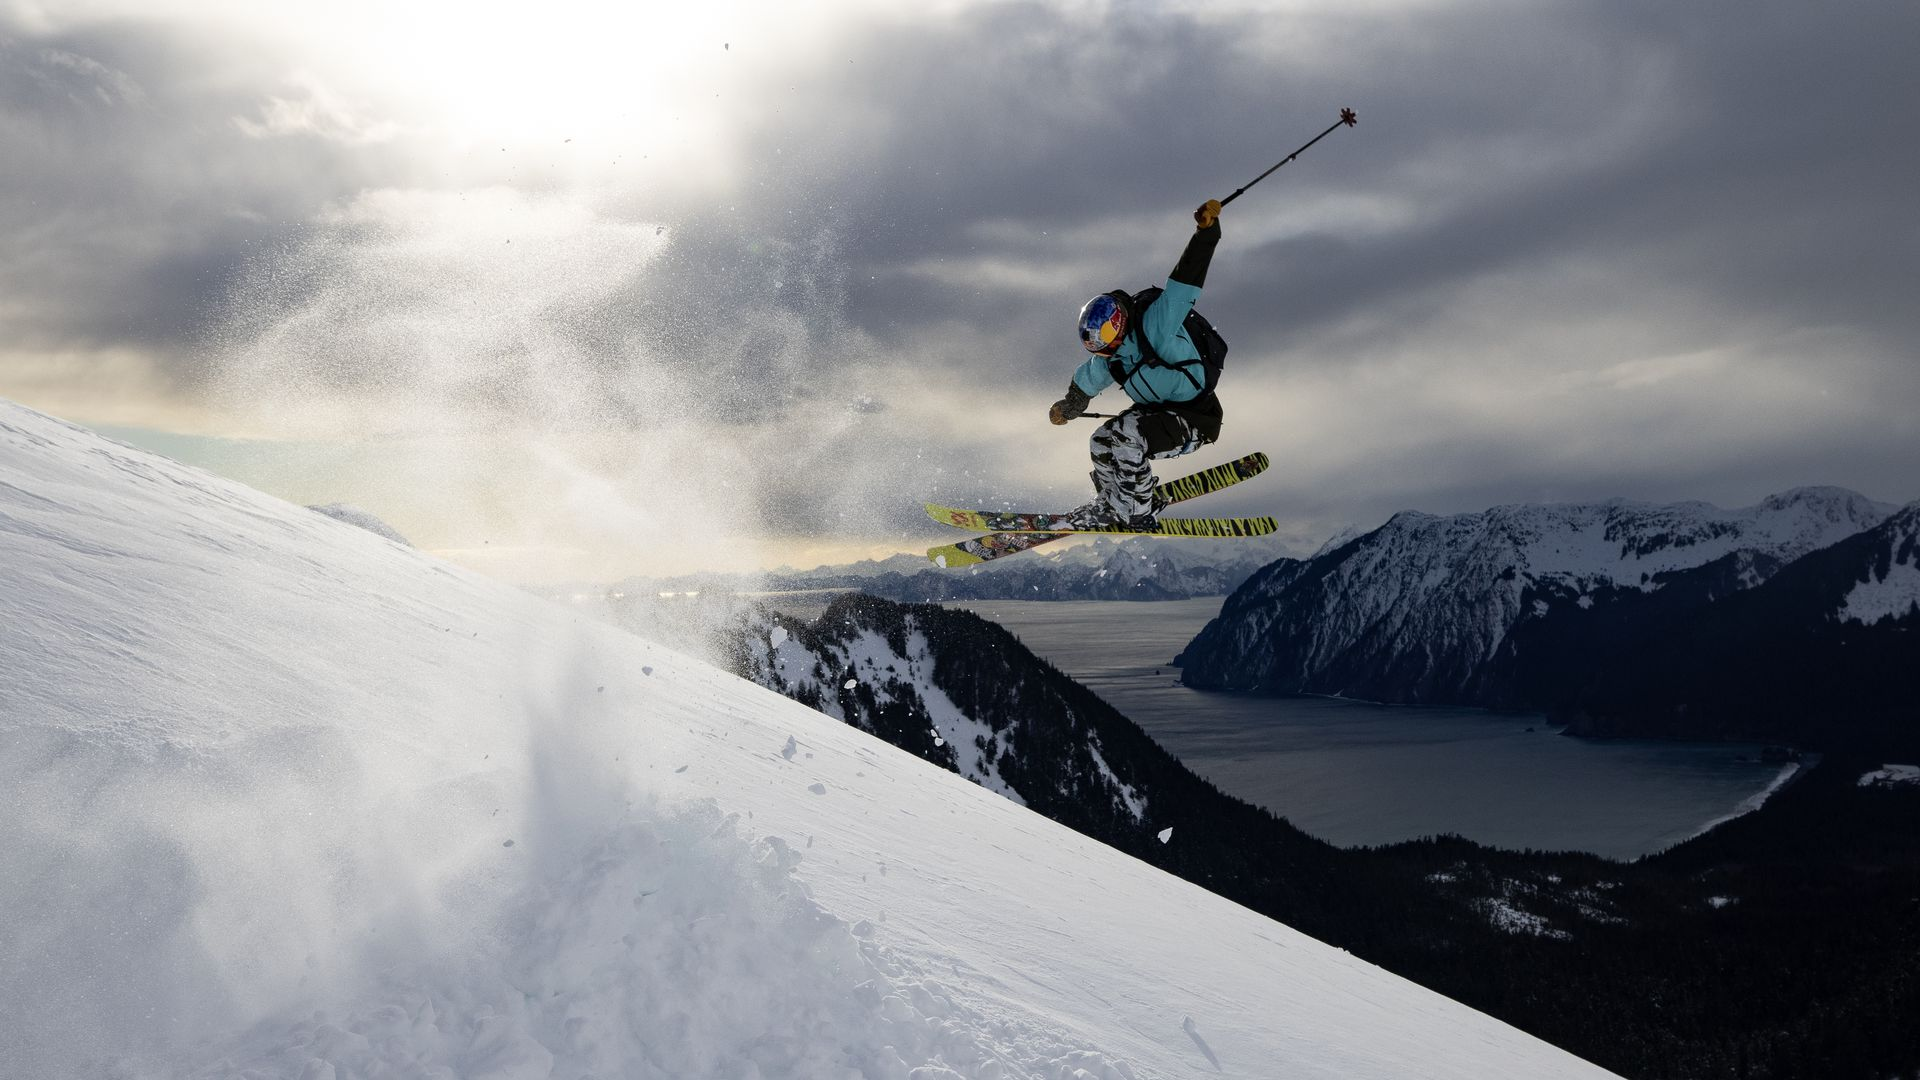 A skier launches off a jump in an image from TGR's latest ski movie.